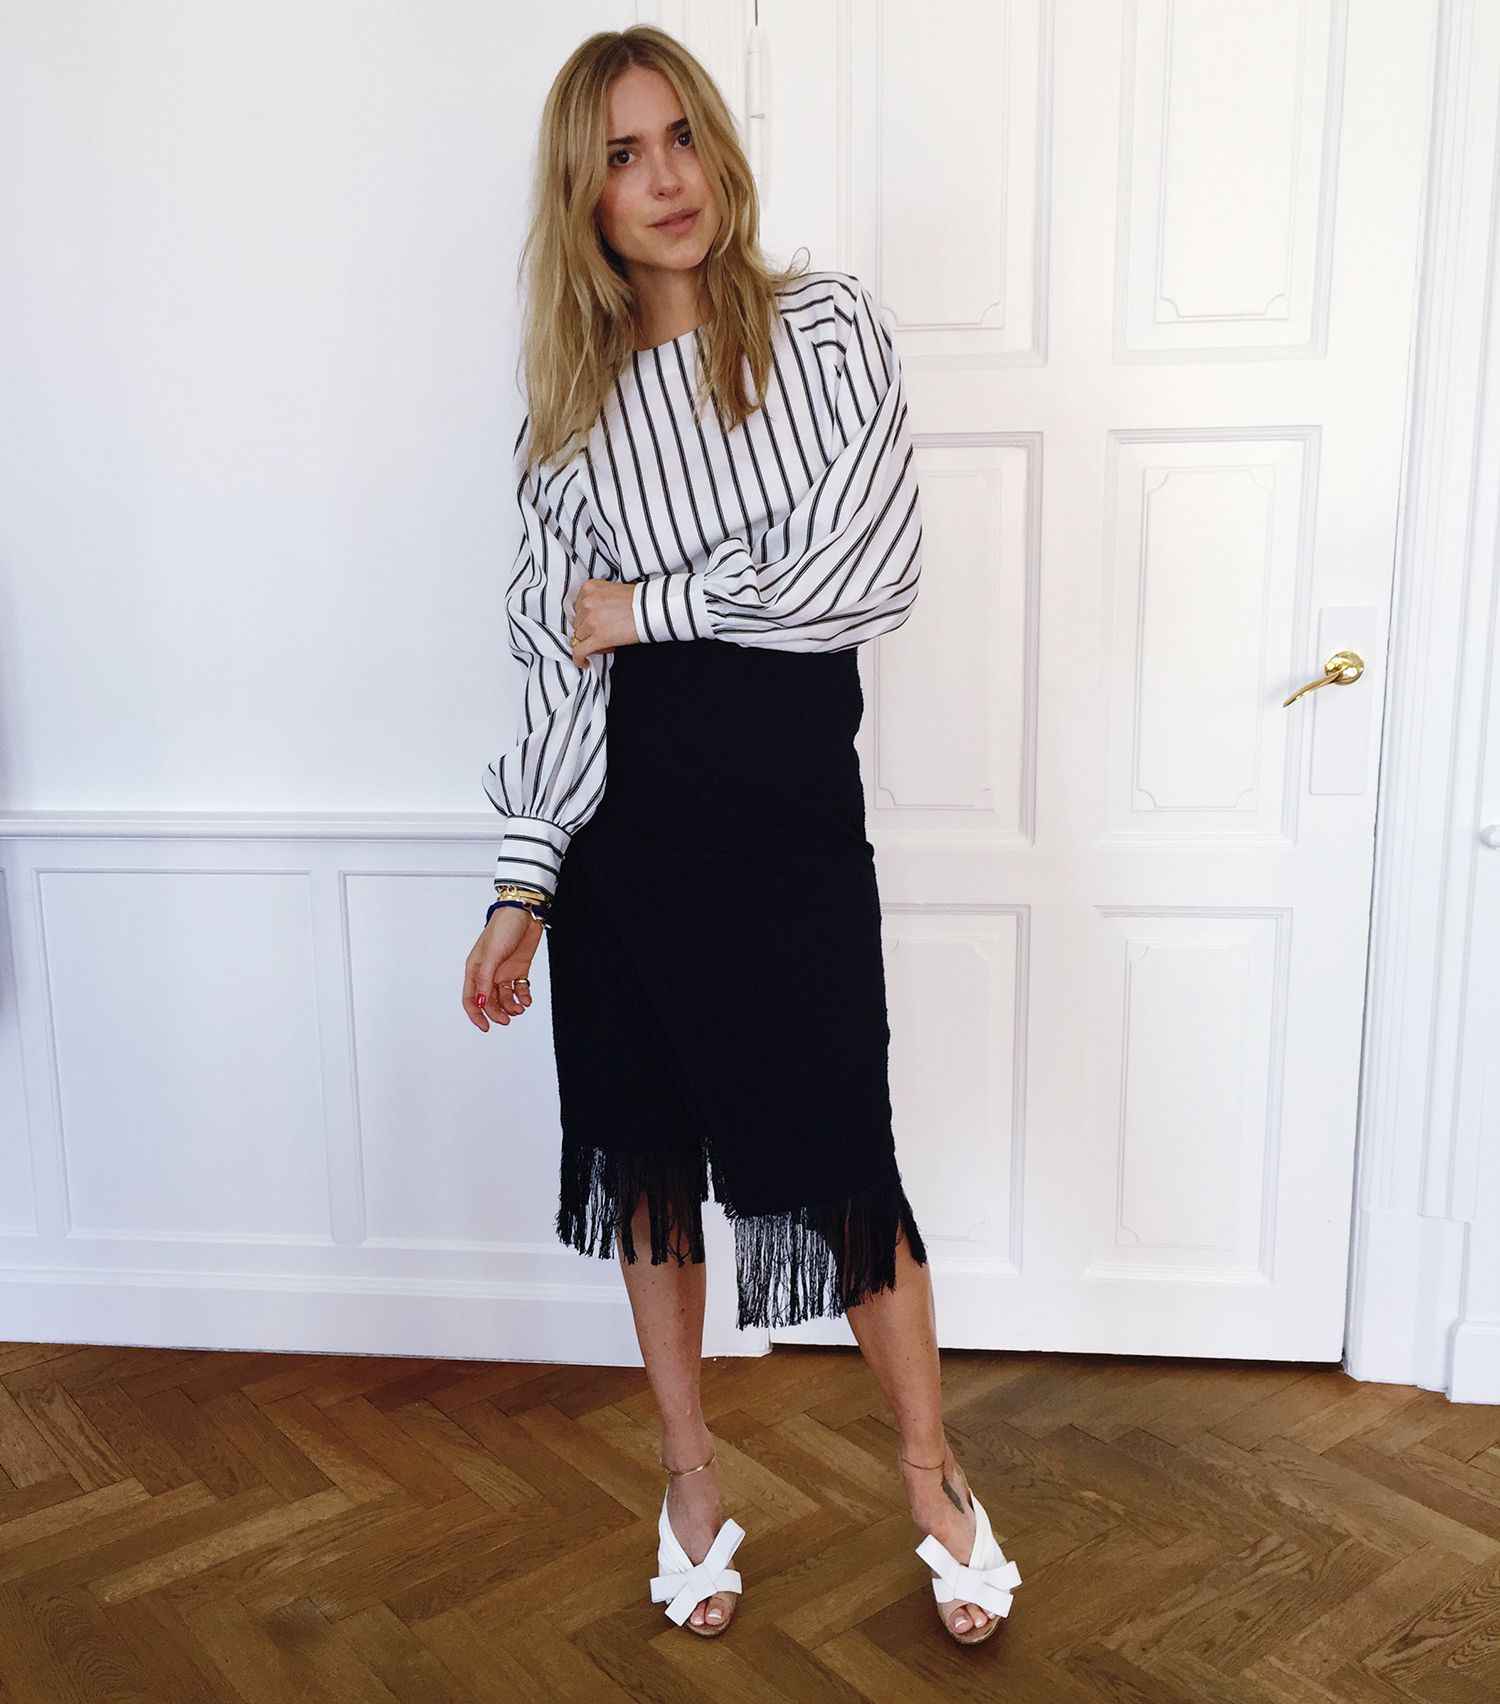 French Stripes And Fringes For Summer!